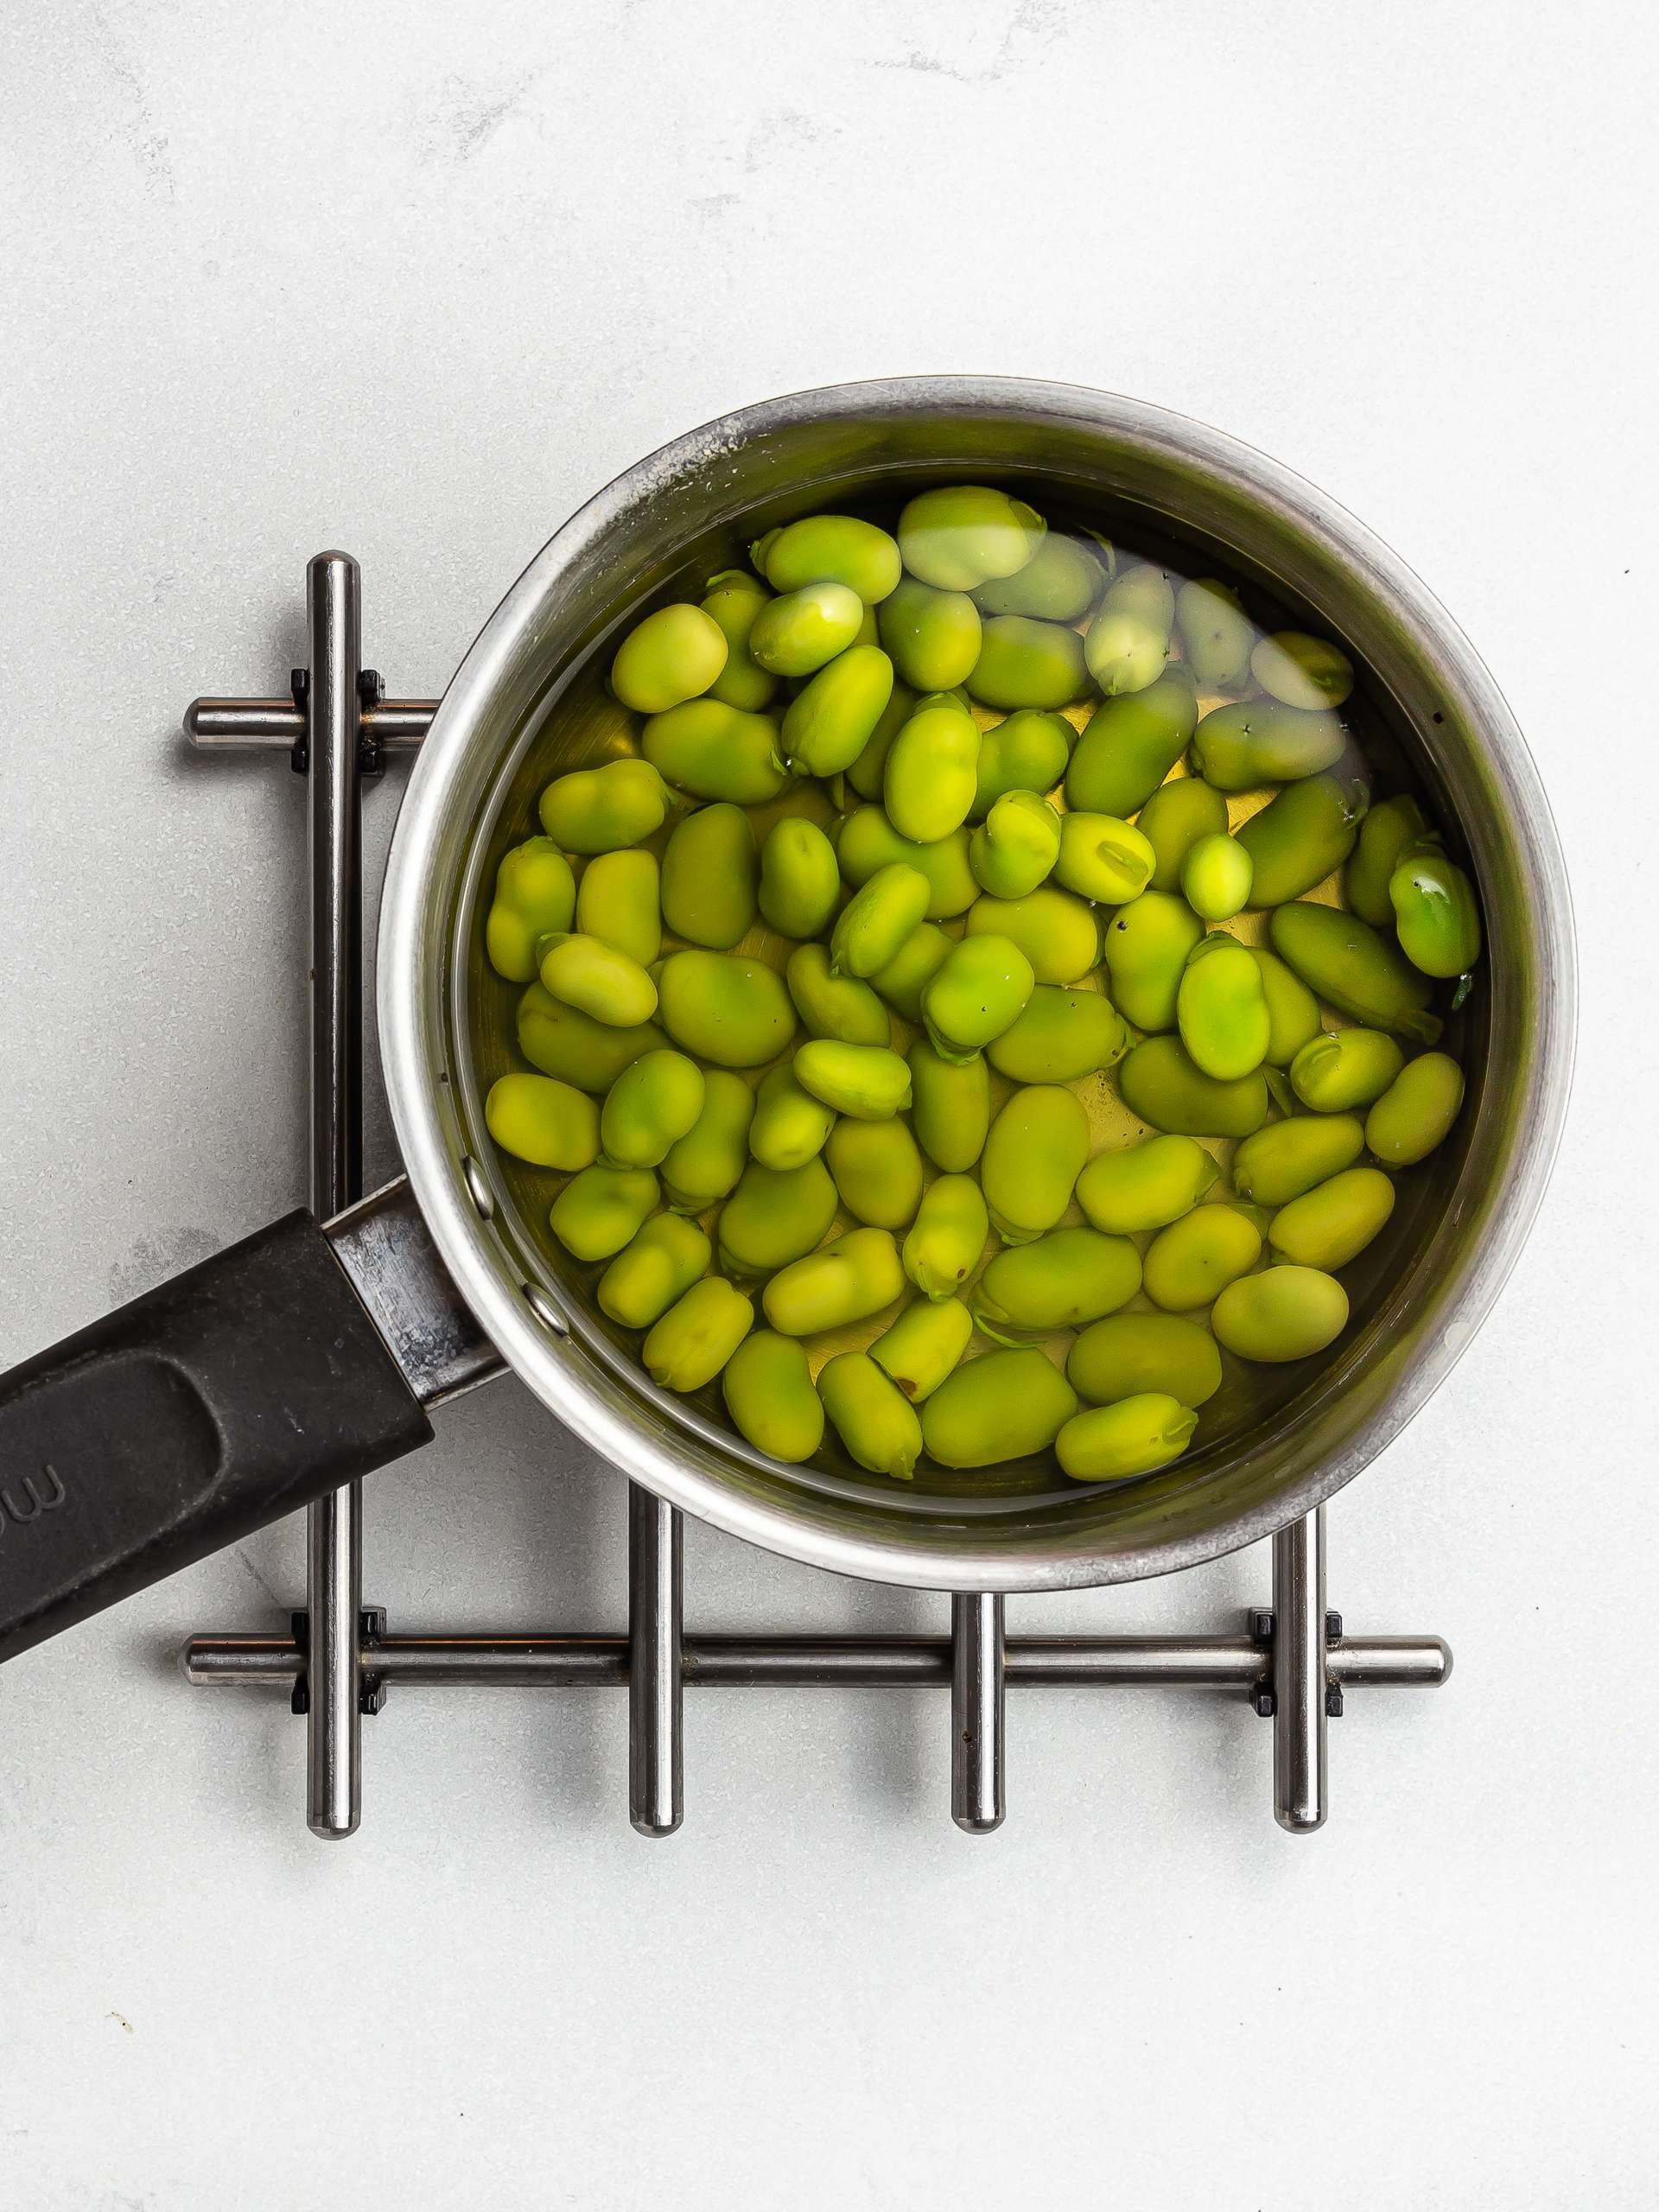 boiled broad beans in a pot